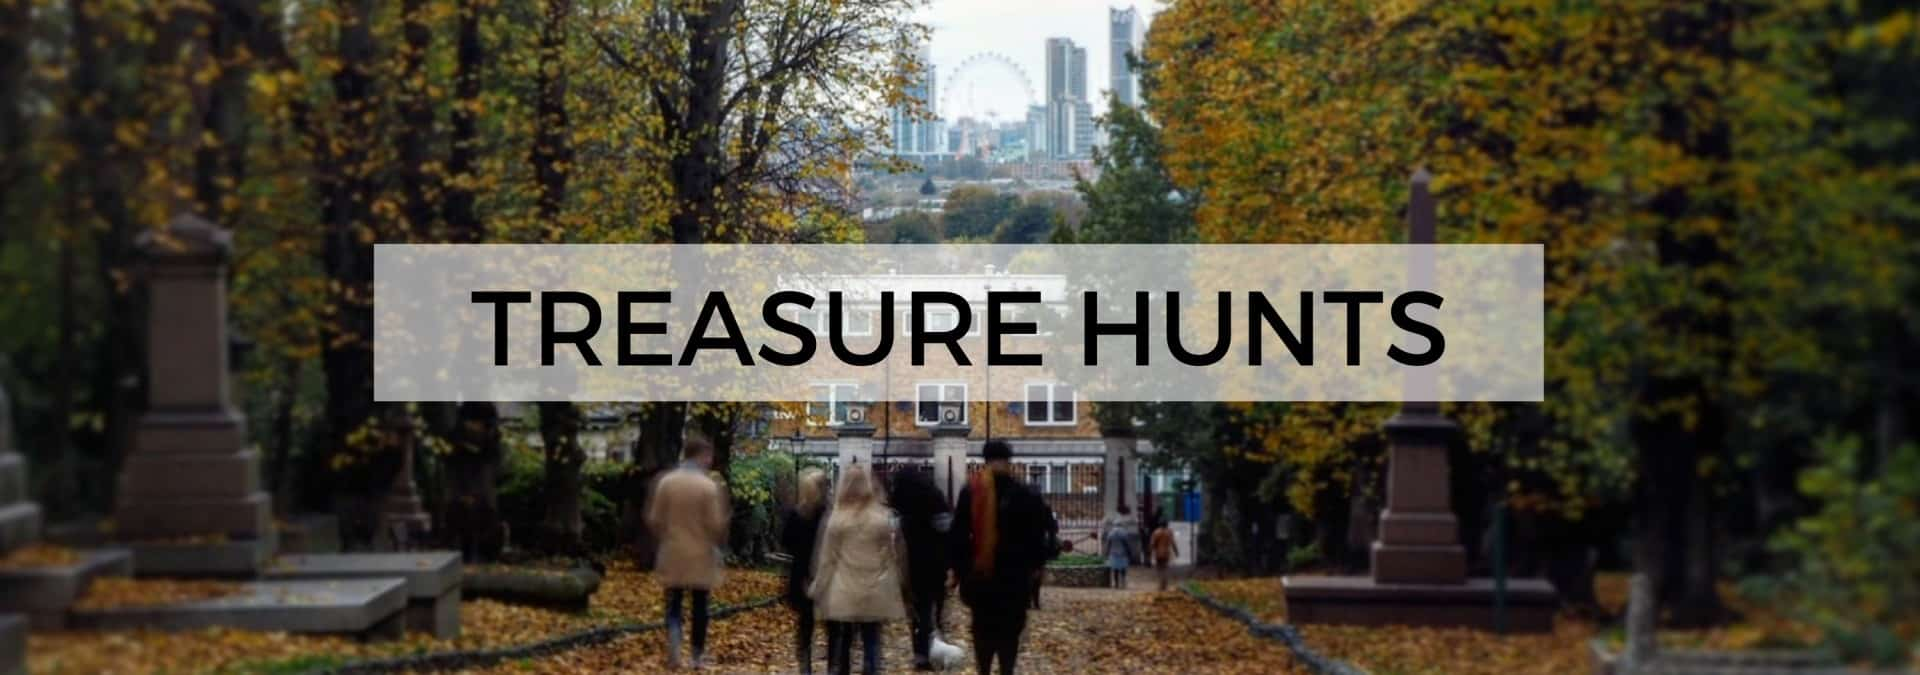 London Treasure Hunts